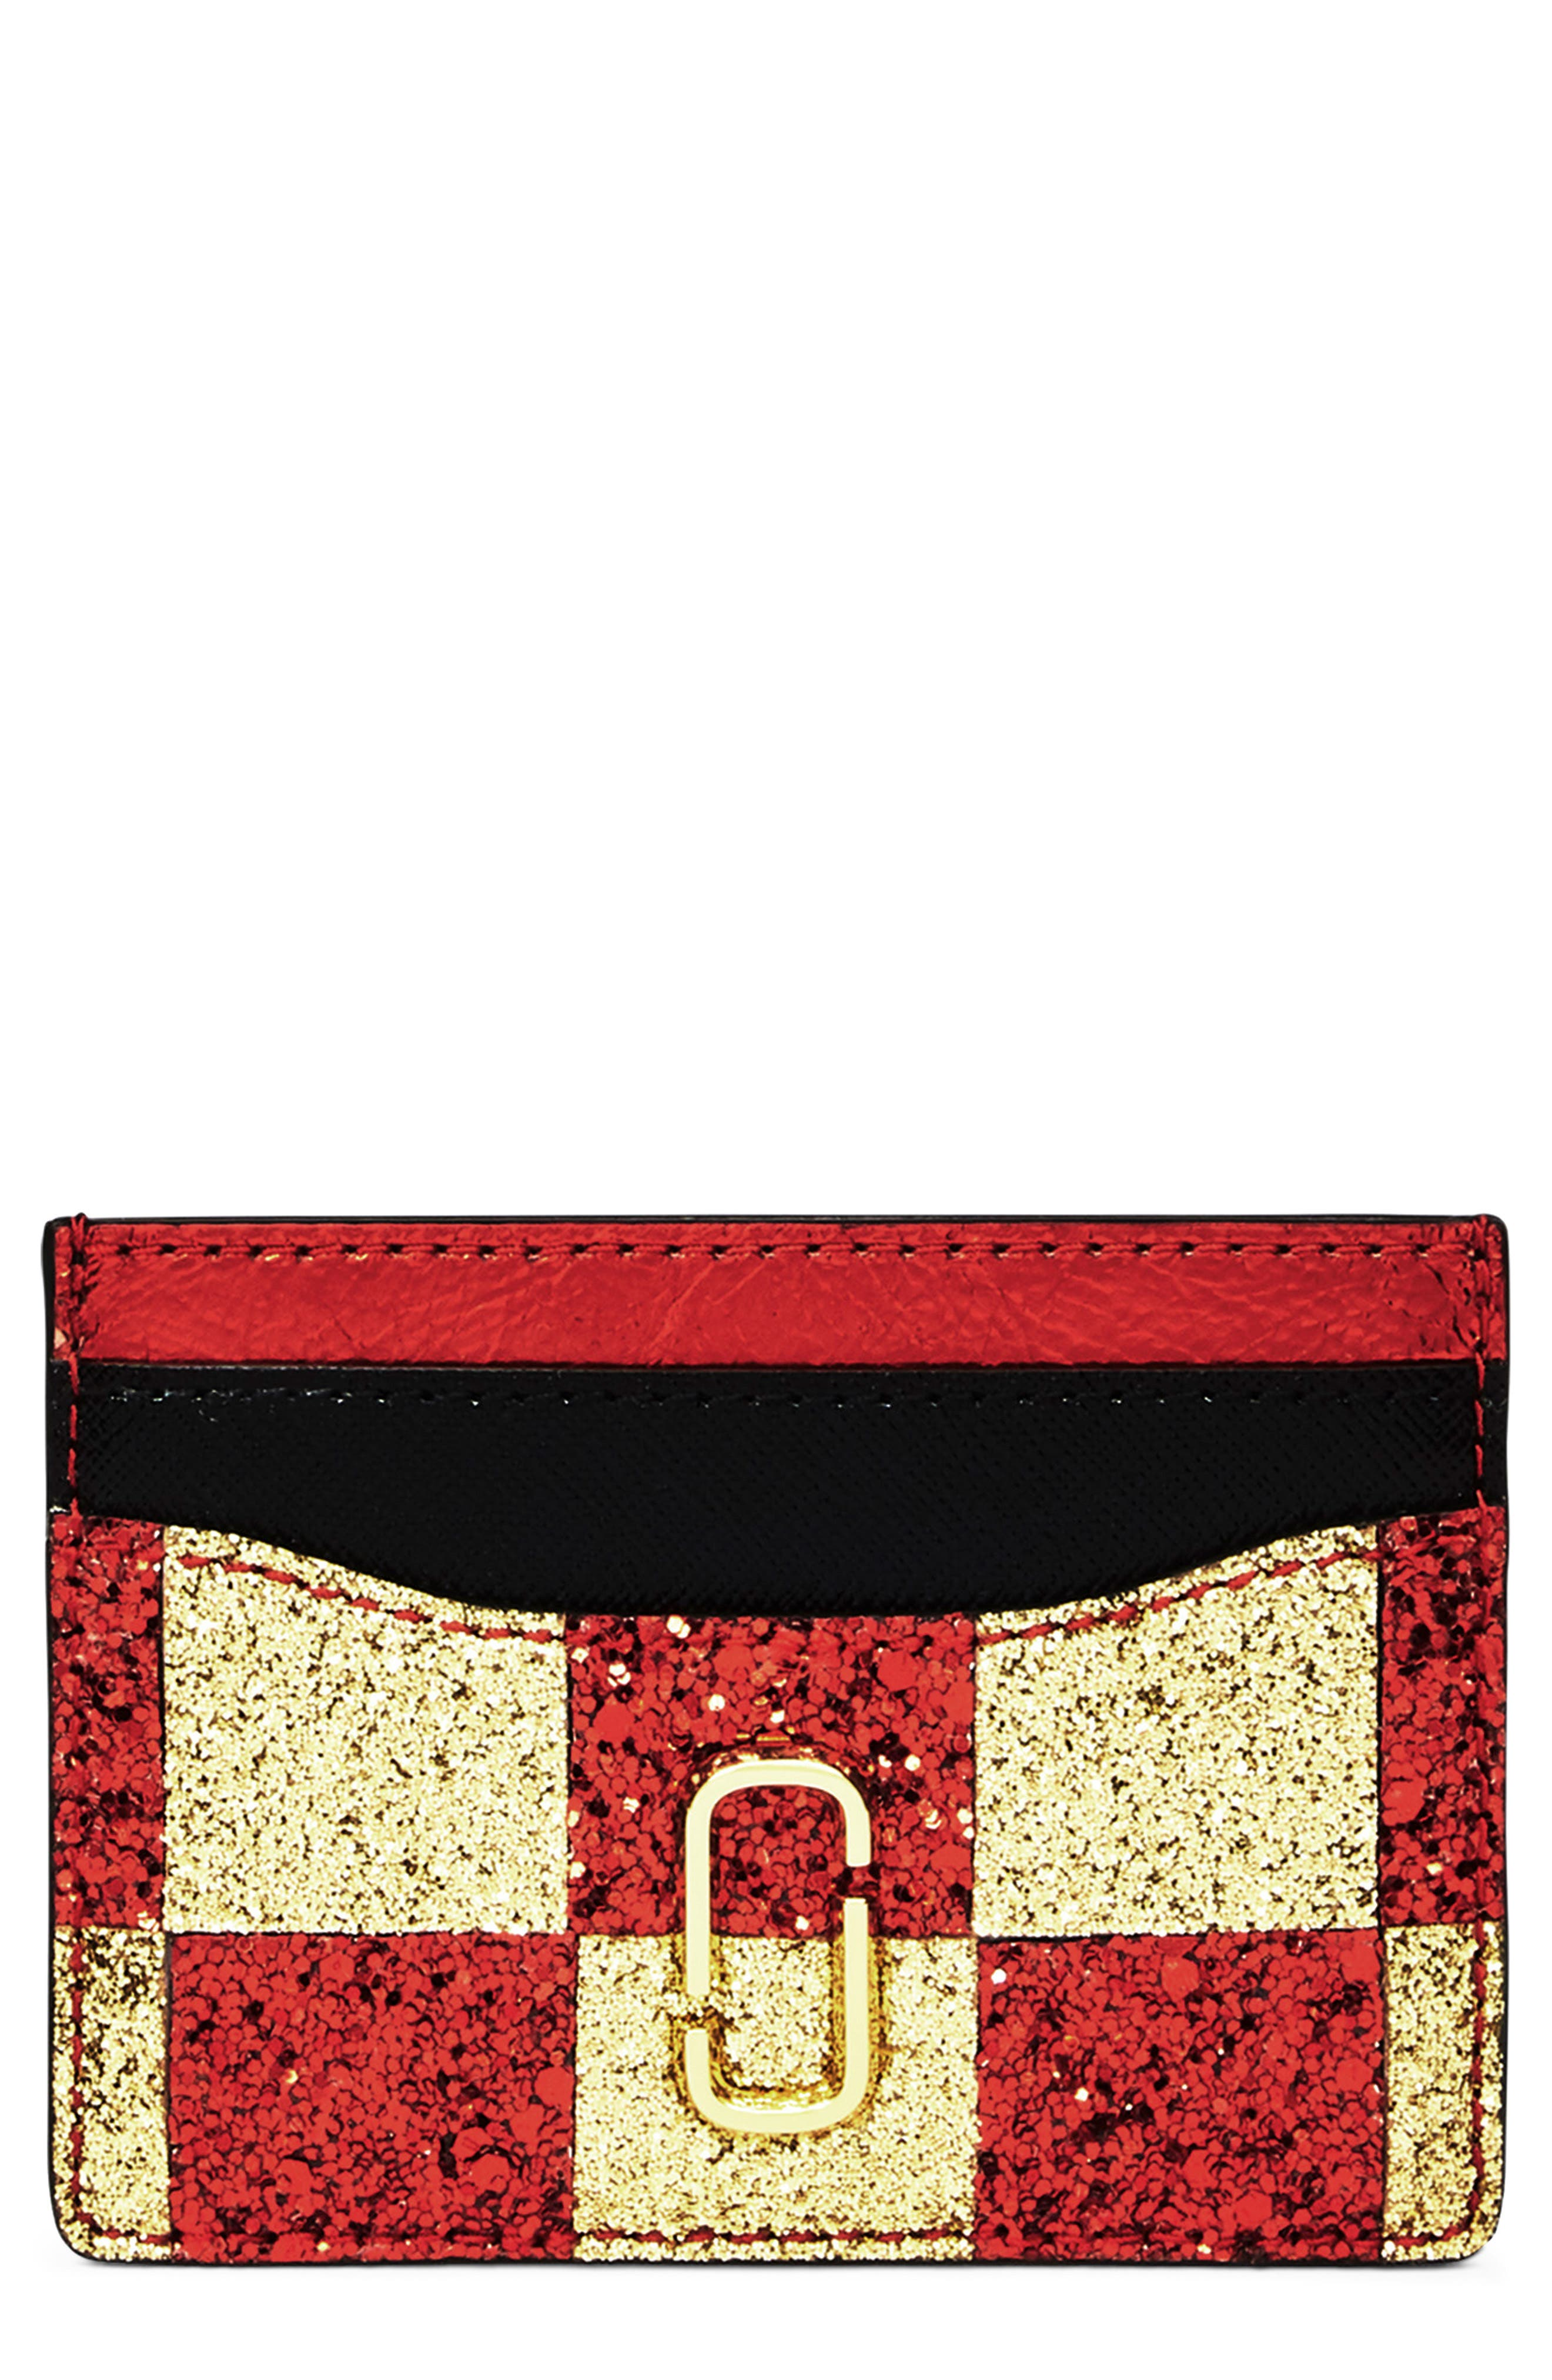 MARC JACOBS Snapshot Glitter Checkerboard Card Case, Main, color, GOLD MULTI